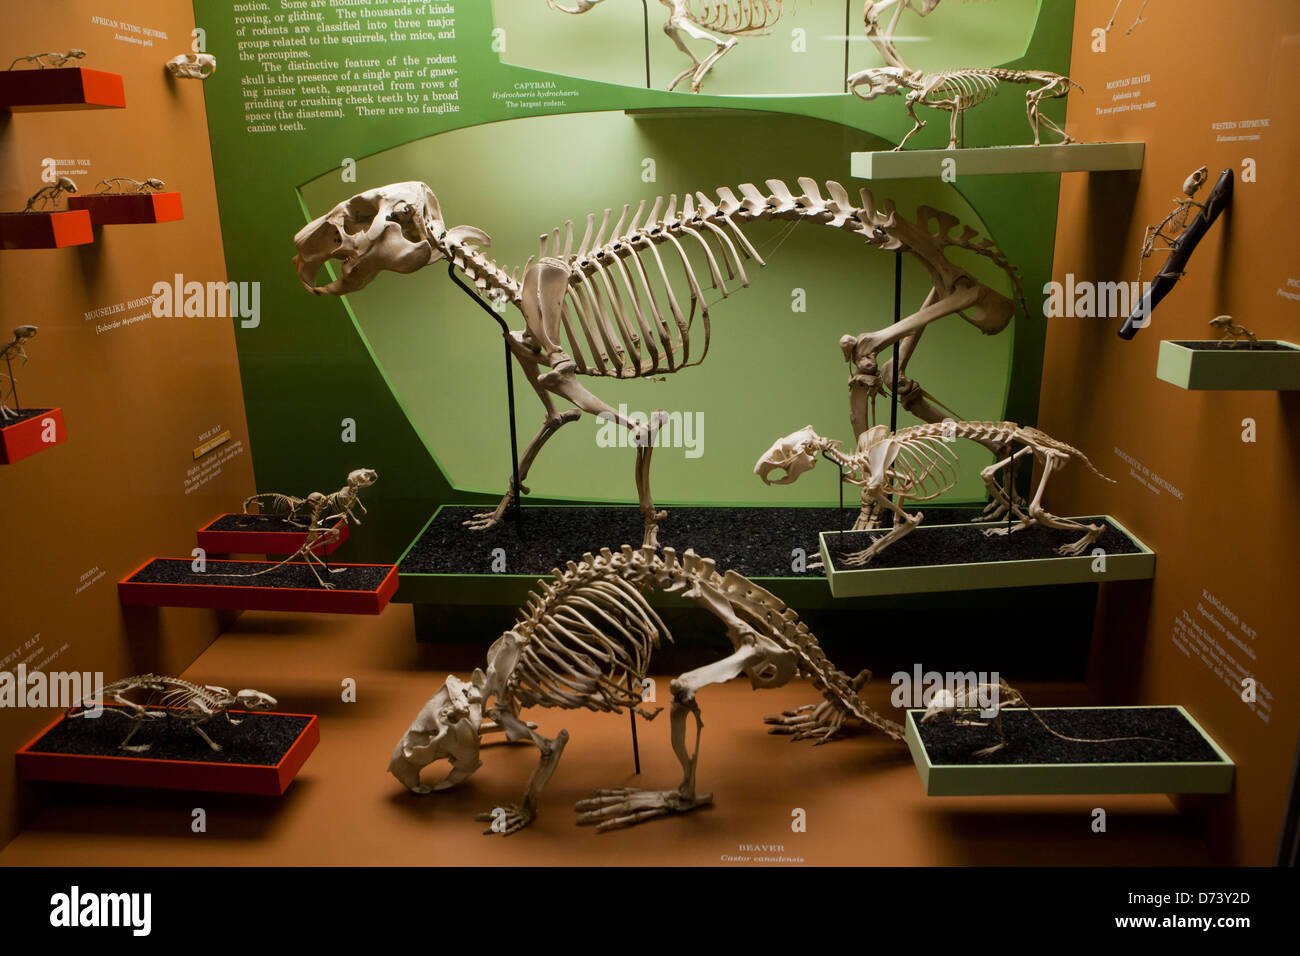 Small mammal skeleton exhibit in museum - Stock Image